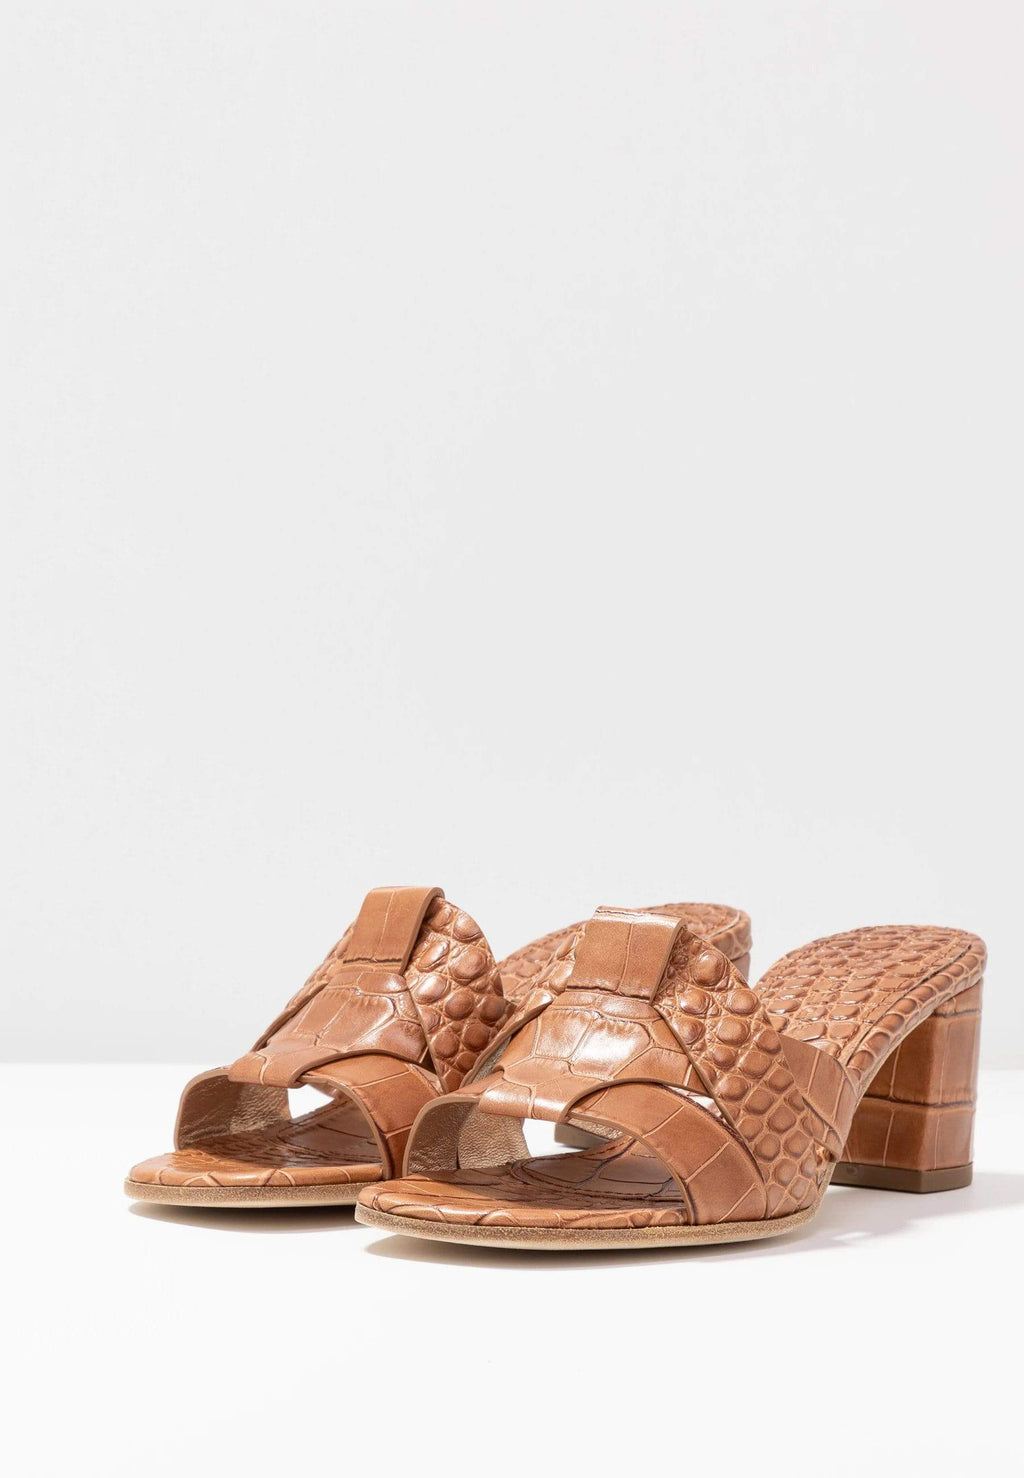 Kennel & Schmenger Shoes Kennel & Schmenger Missy Sandal Caramello izzi-of-baslow